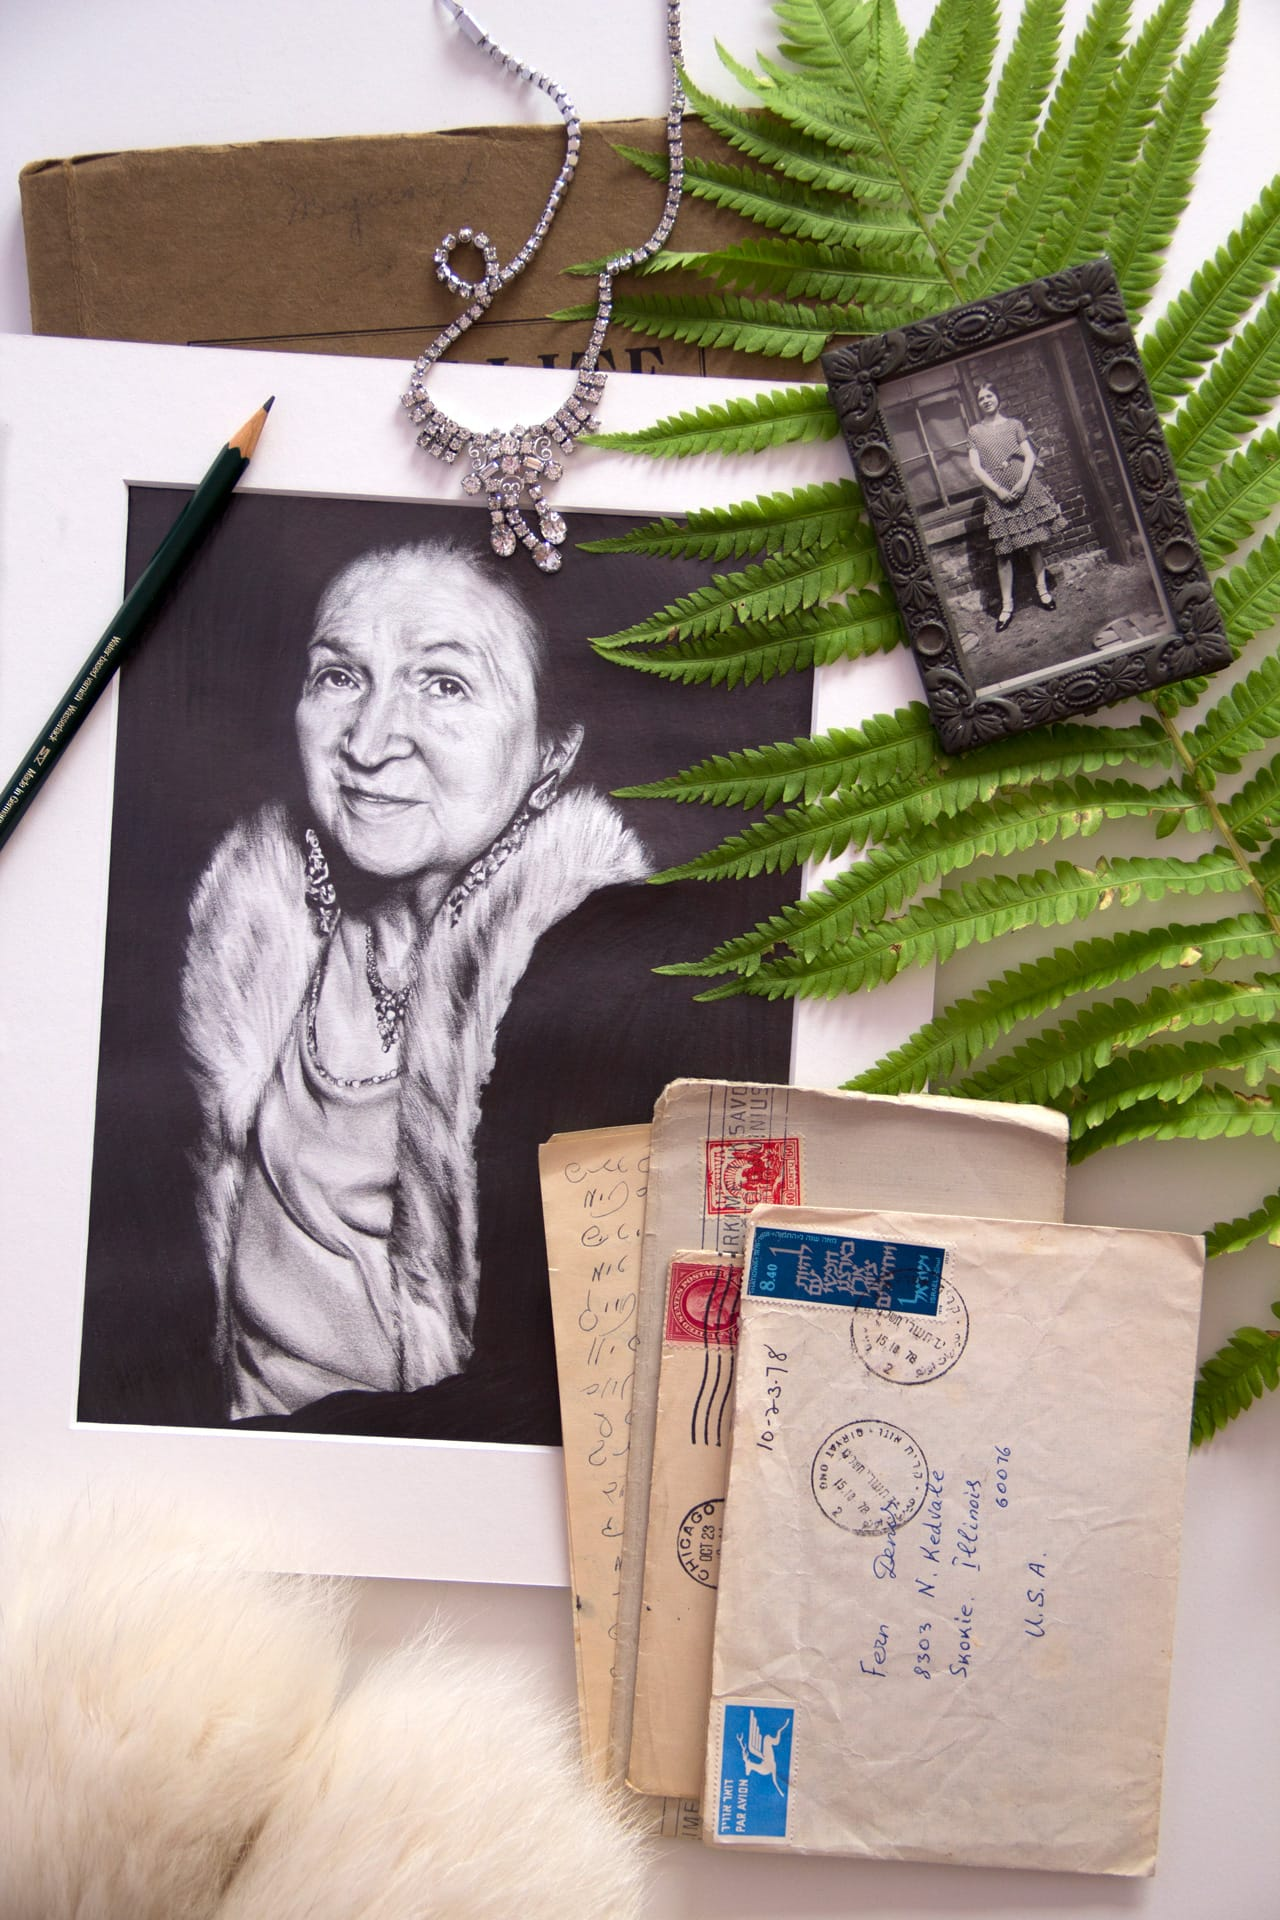 Ilana Denis-Bauer:The Permanence of Memory: Fern